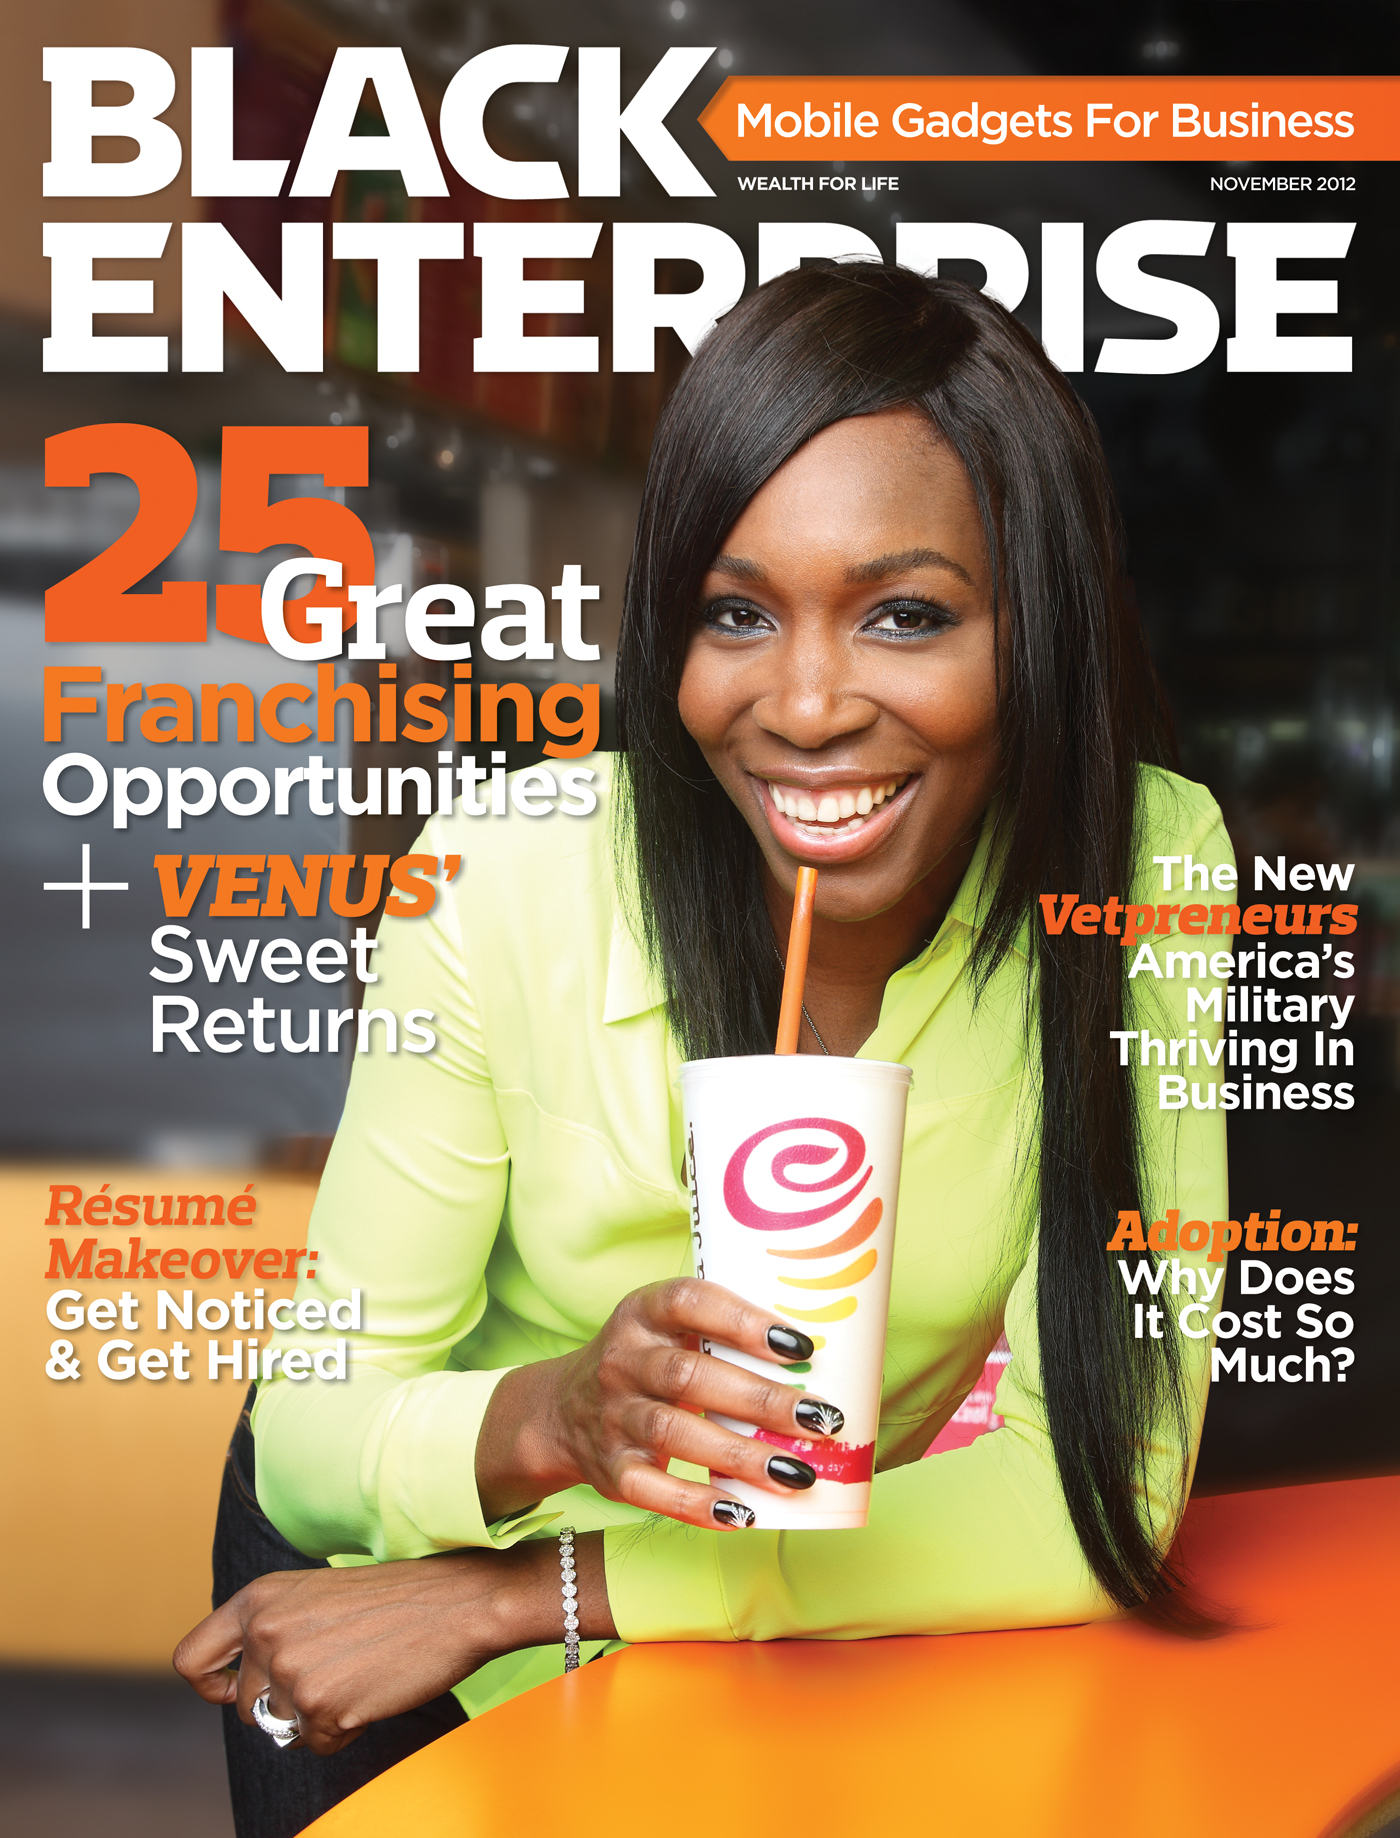 How To Get Into Black Enterprise: Entrepreneurs, Take Note